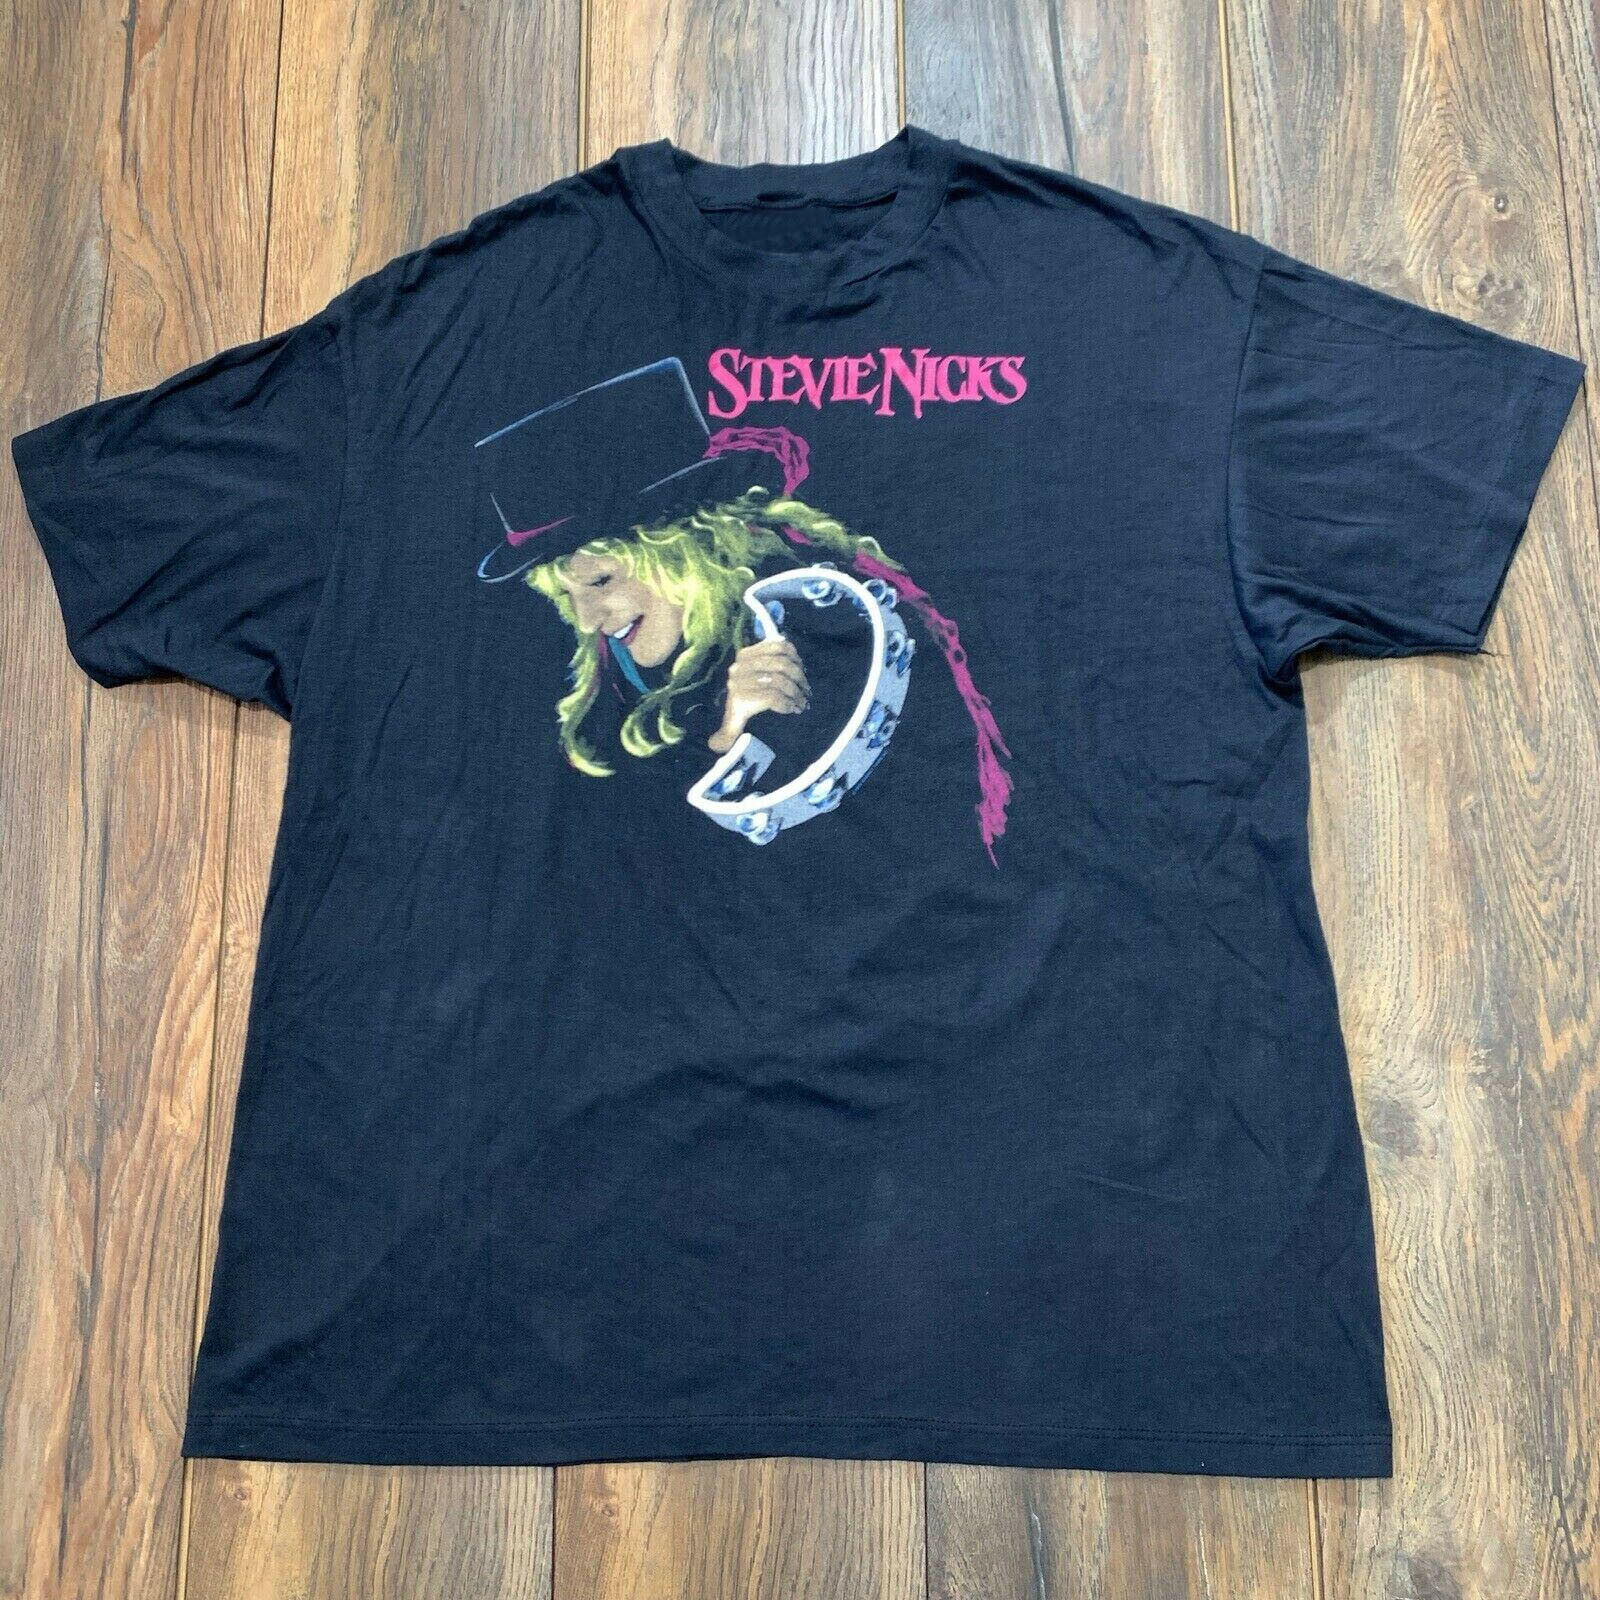 80s Stevie Nicks Other Side Of The Mirror Tour Band T Shirt##